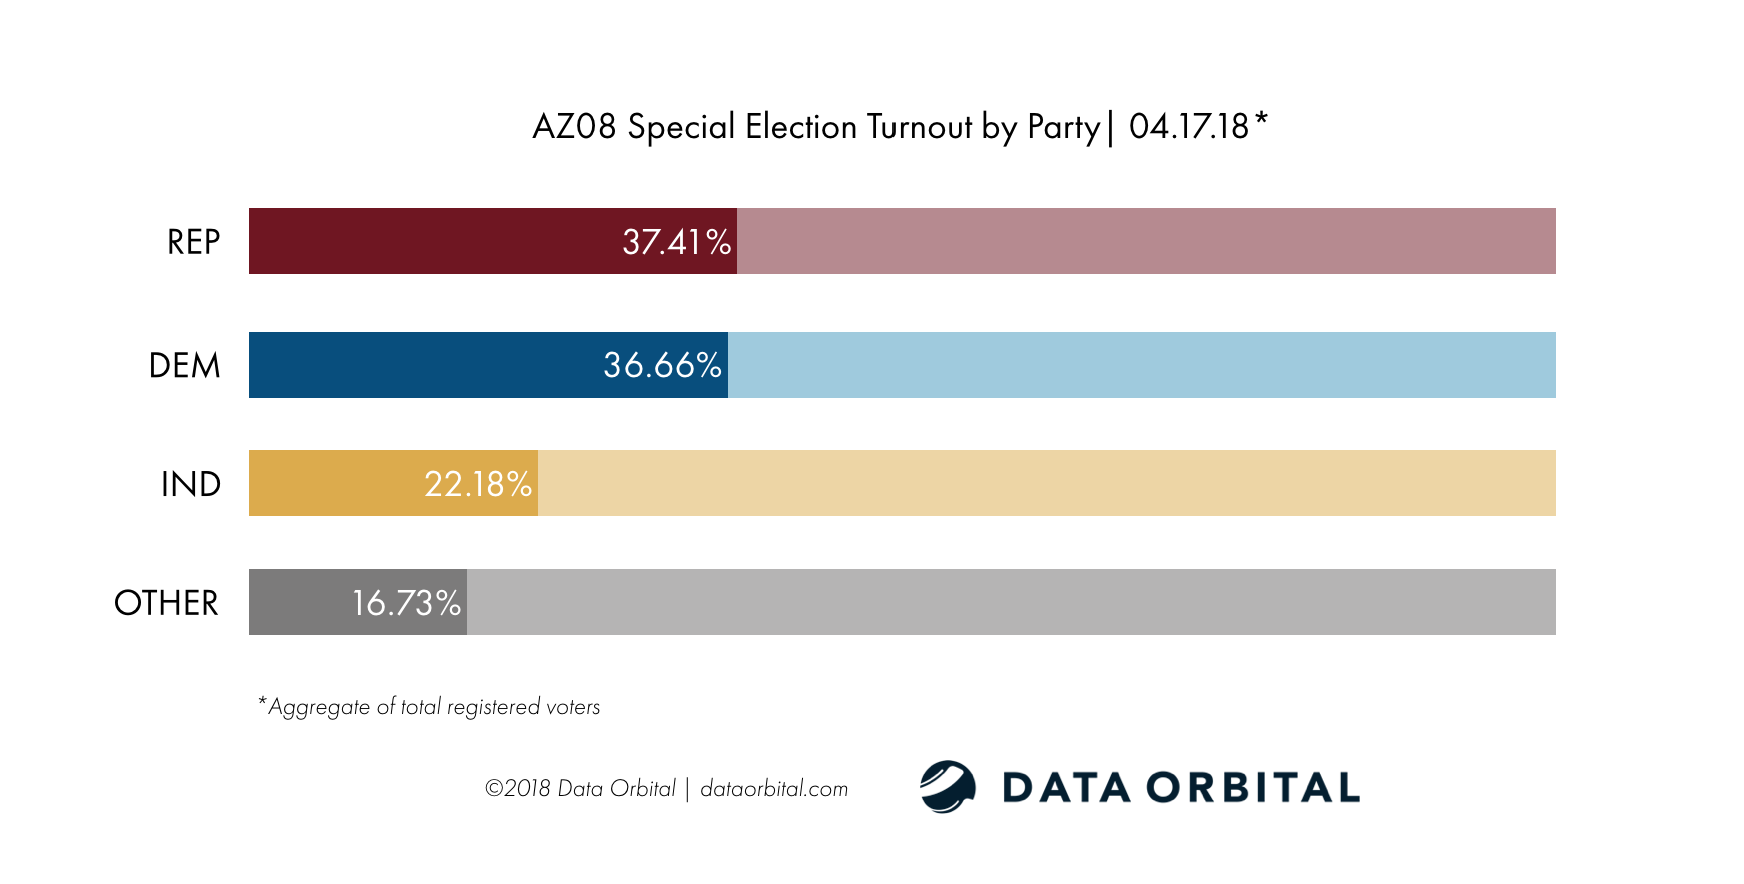 AZ08 Special Election Ballot Returns 04.17.18 Turnout by Party